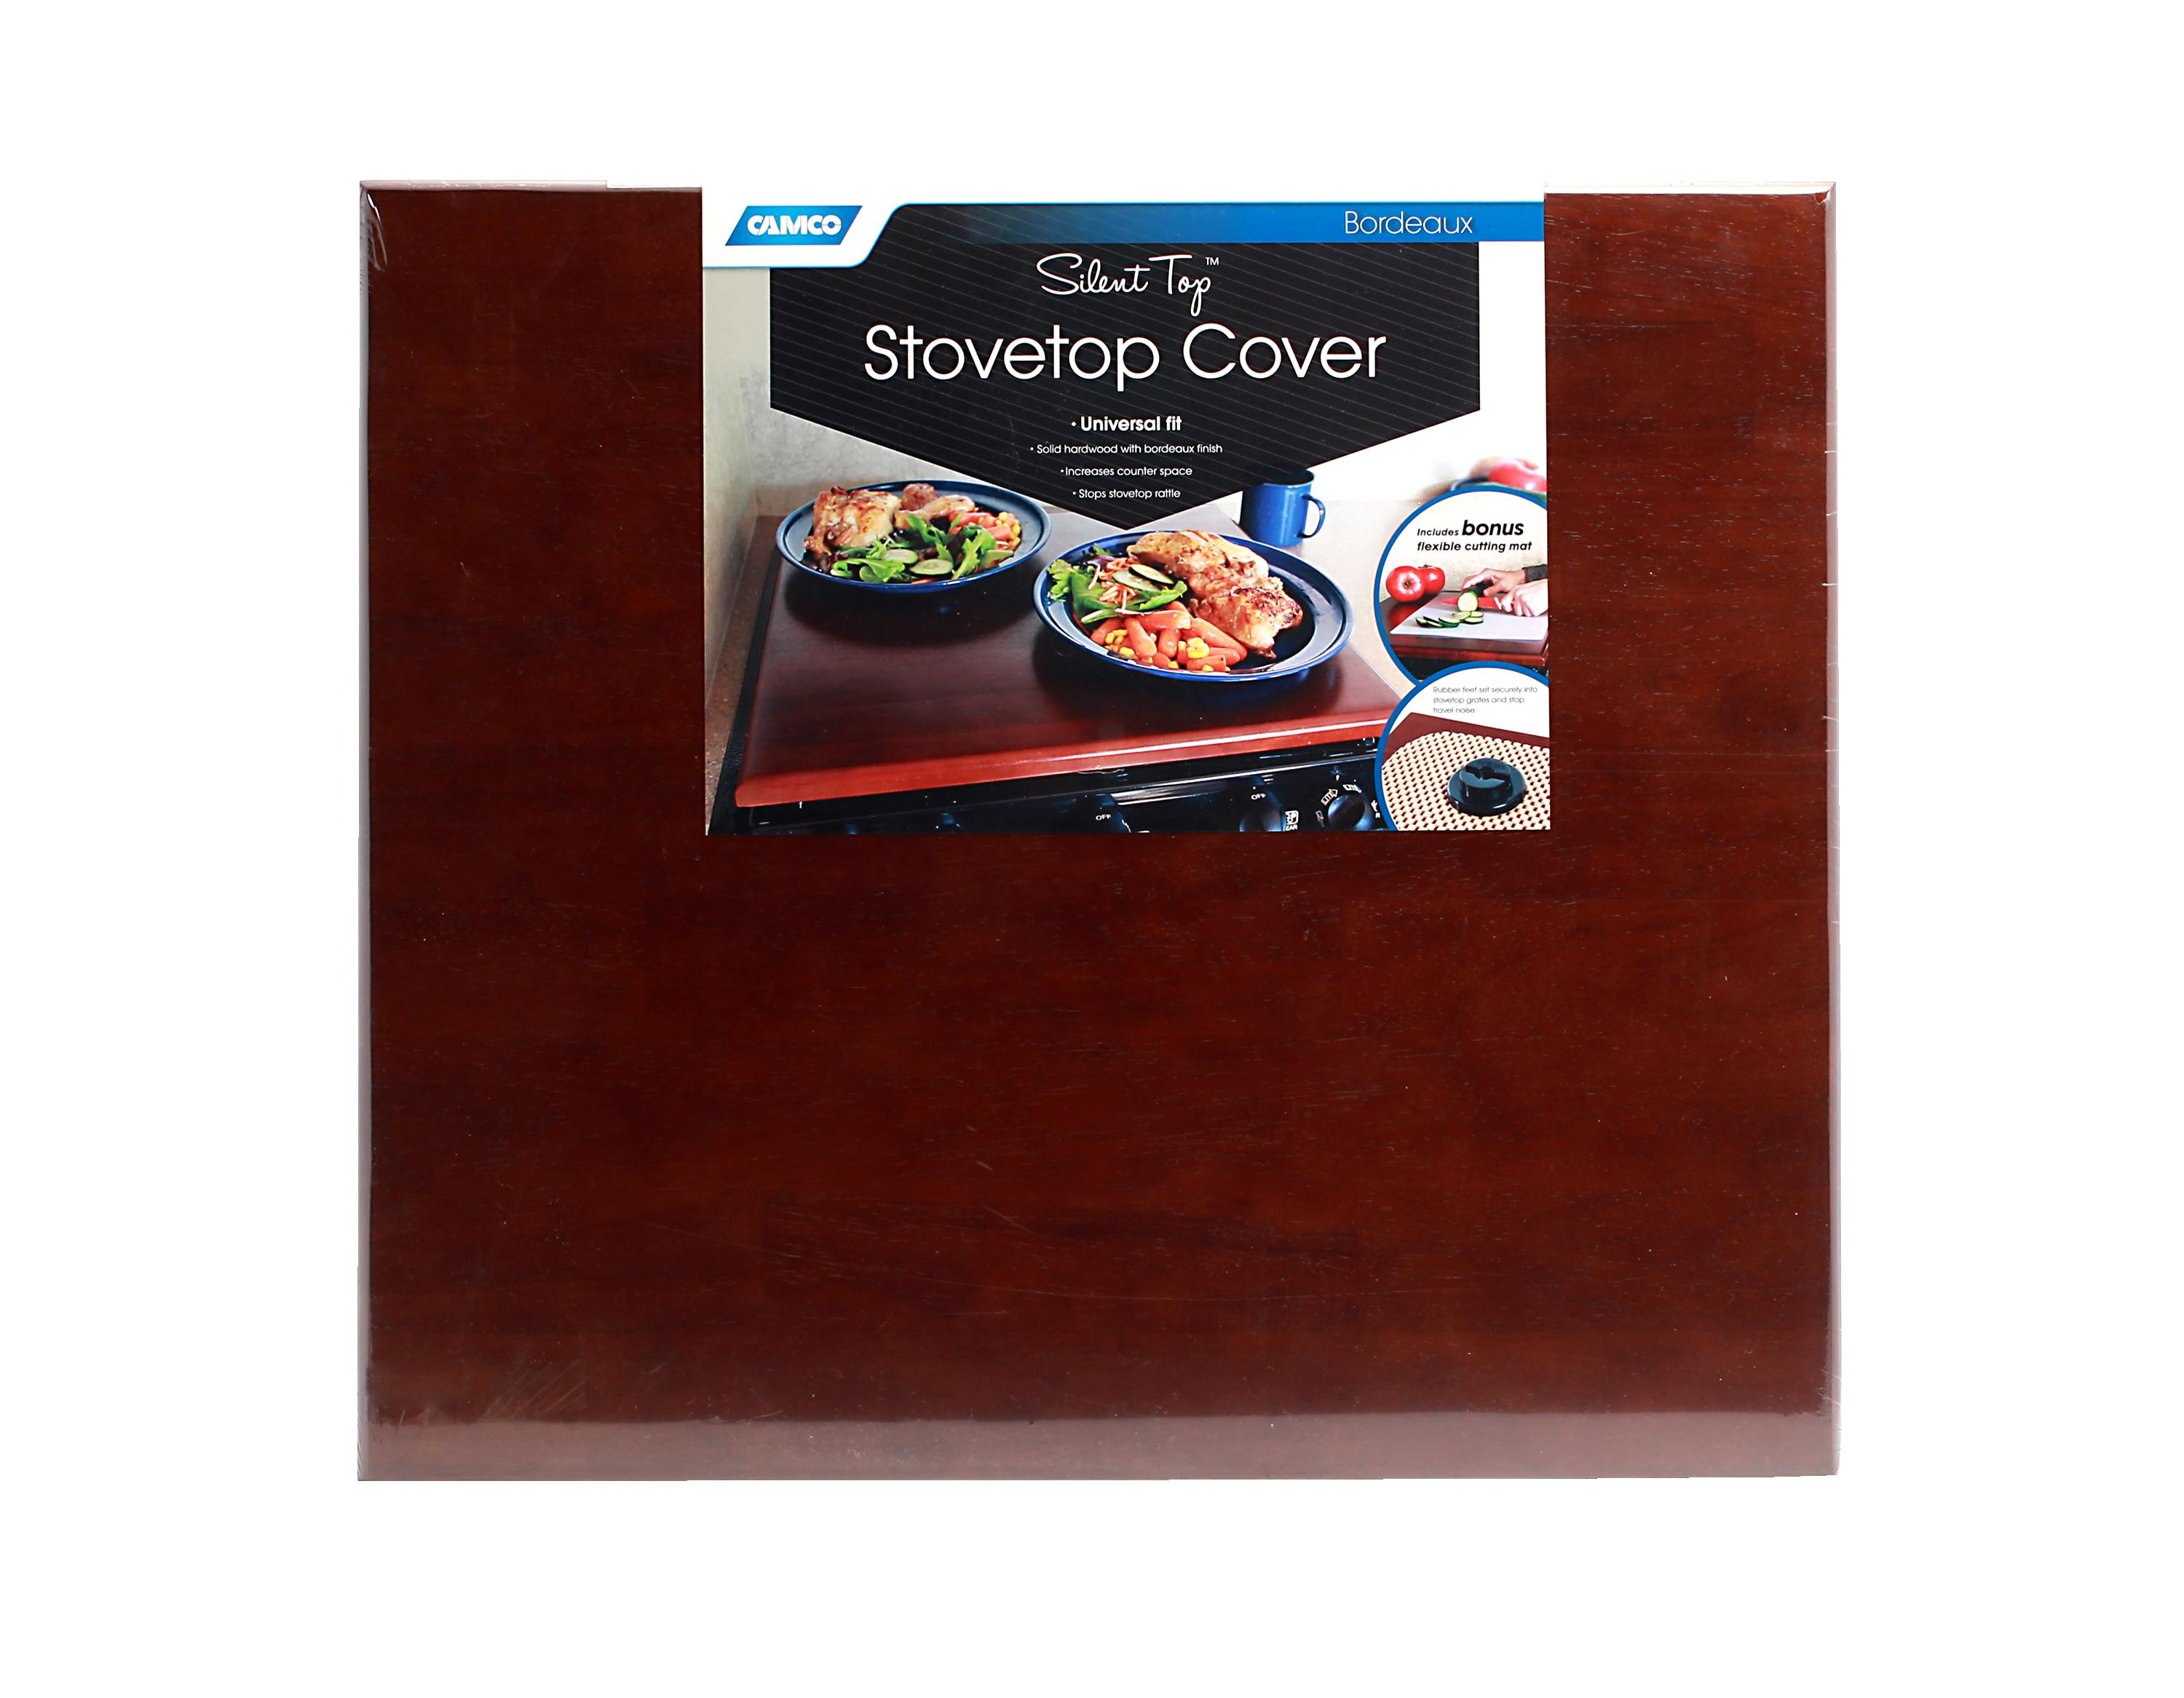 Camco 43526 Universal Silent Top Stovetop Cover Bordeaux